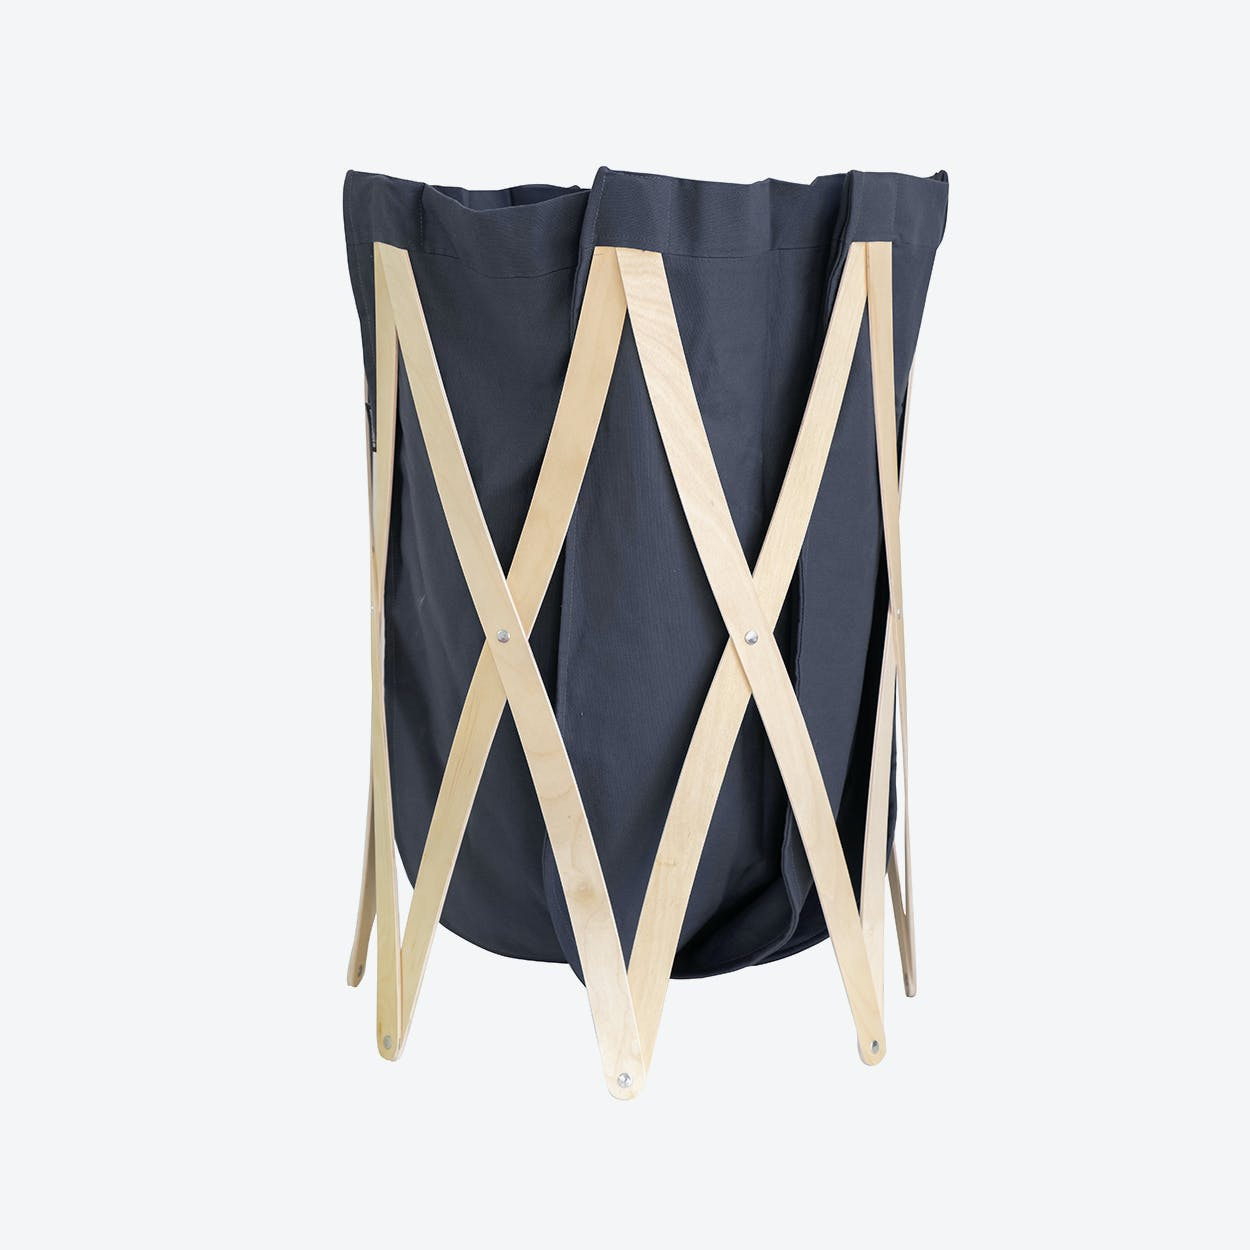 Marie Pi Laundry Basket in Navy/Natural